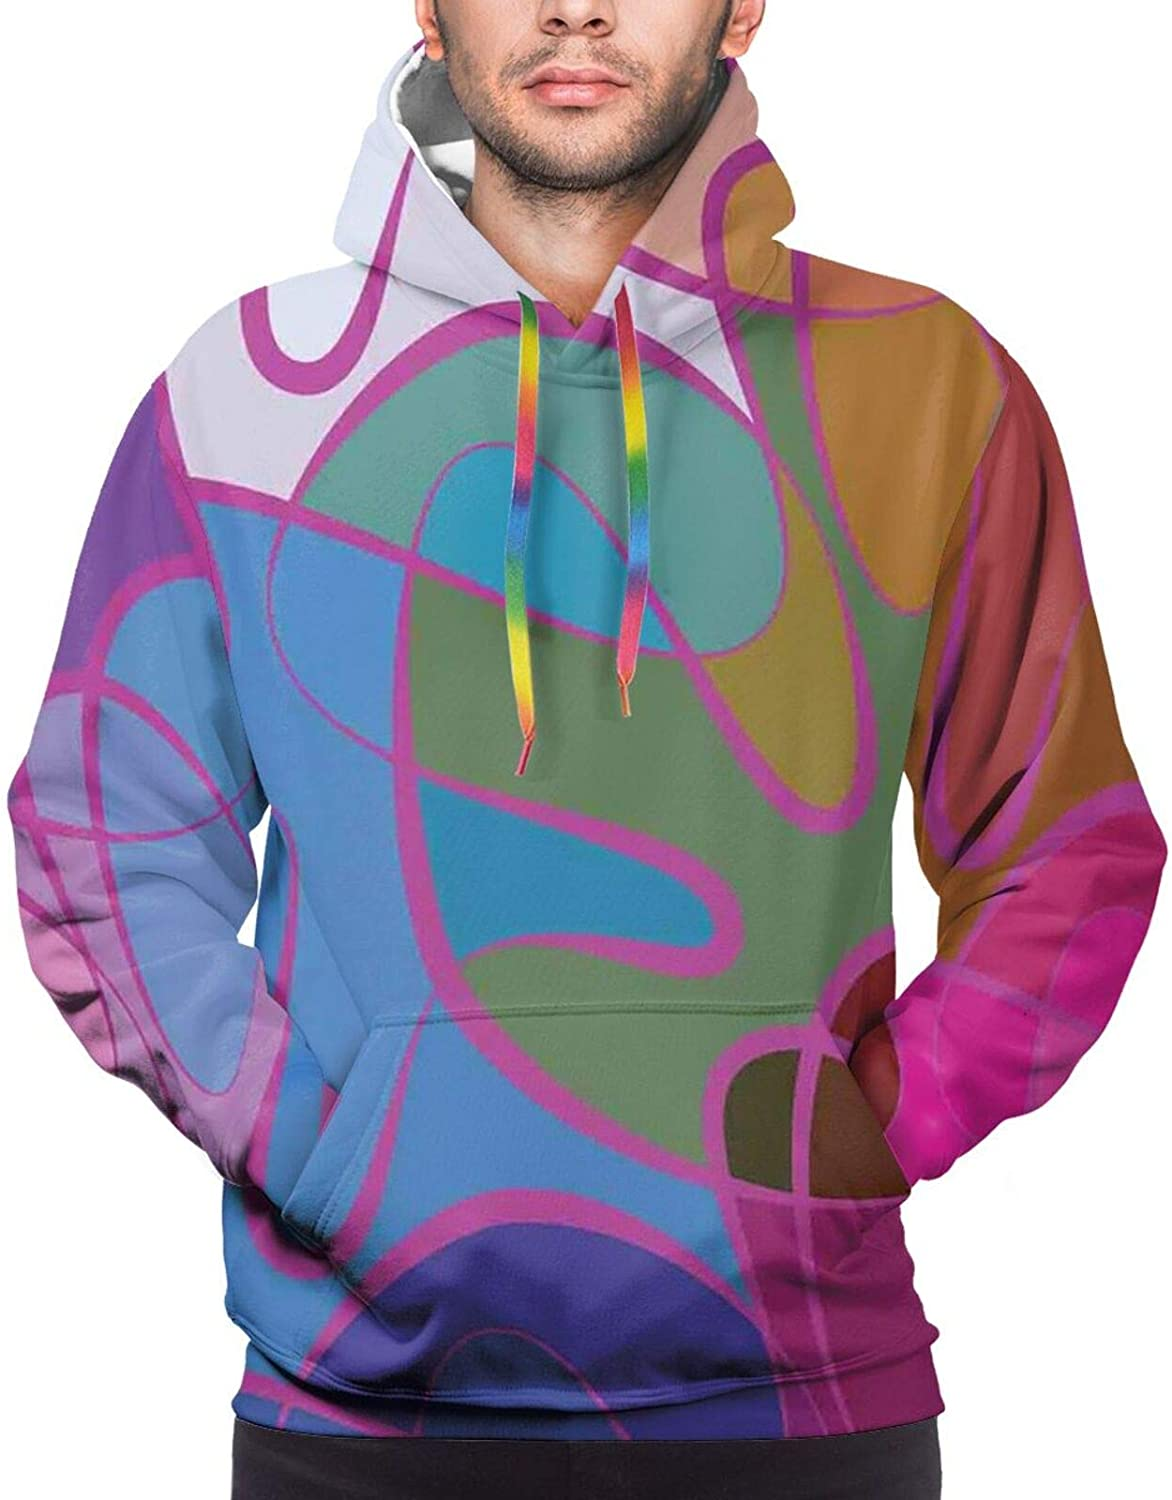 Men's Hoodies Sweatshirts,Motley Wave Pattern with Hand-Drawn Doodle Style Swirled Curly Lines Colorful